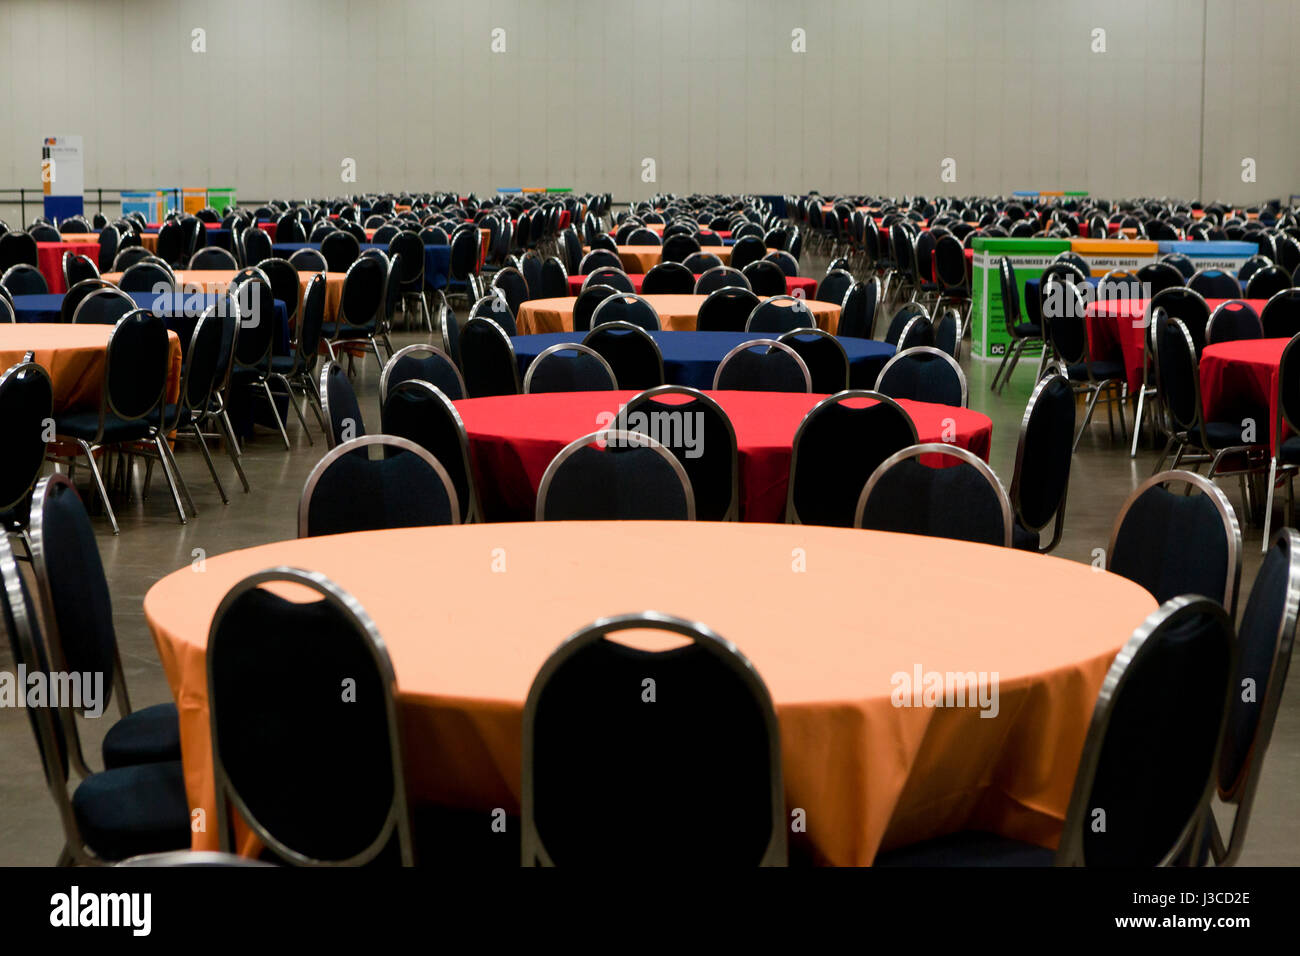 Tables and chairs setup for large indoor event - USA - Stock Image